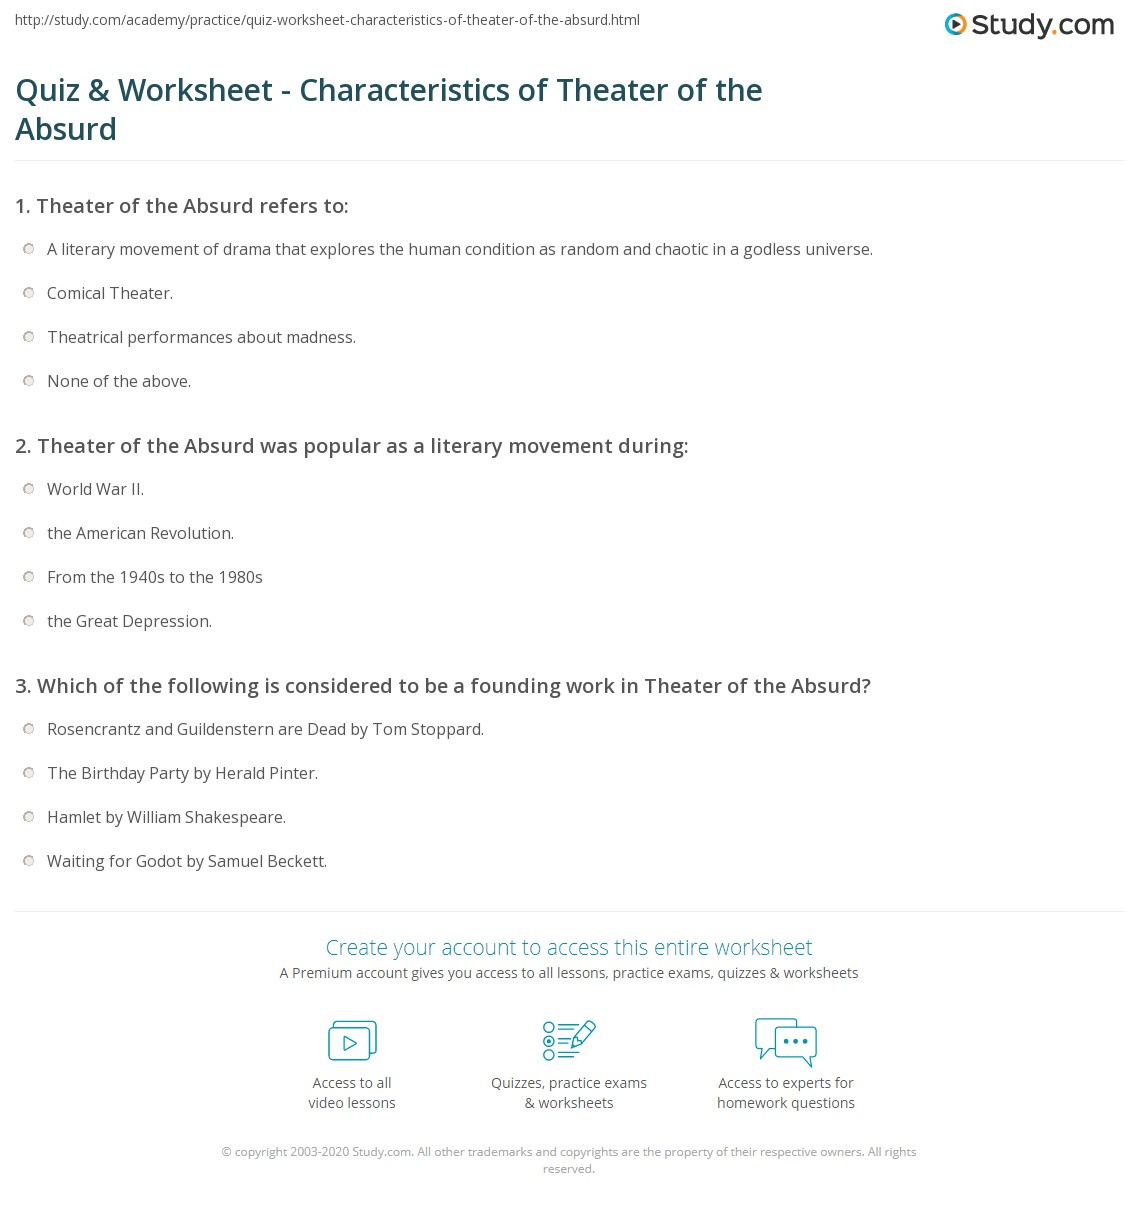 Print Theater of the Absurd: Definition & Characteristics Worksheet